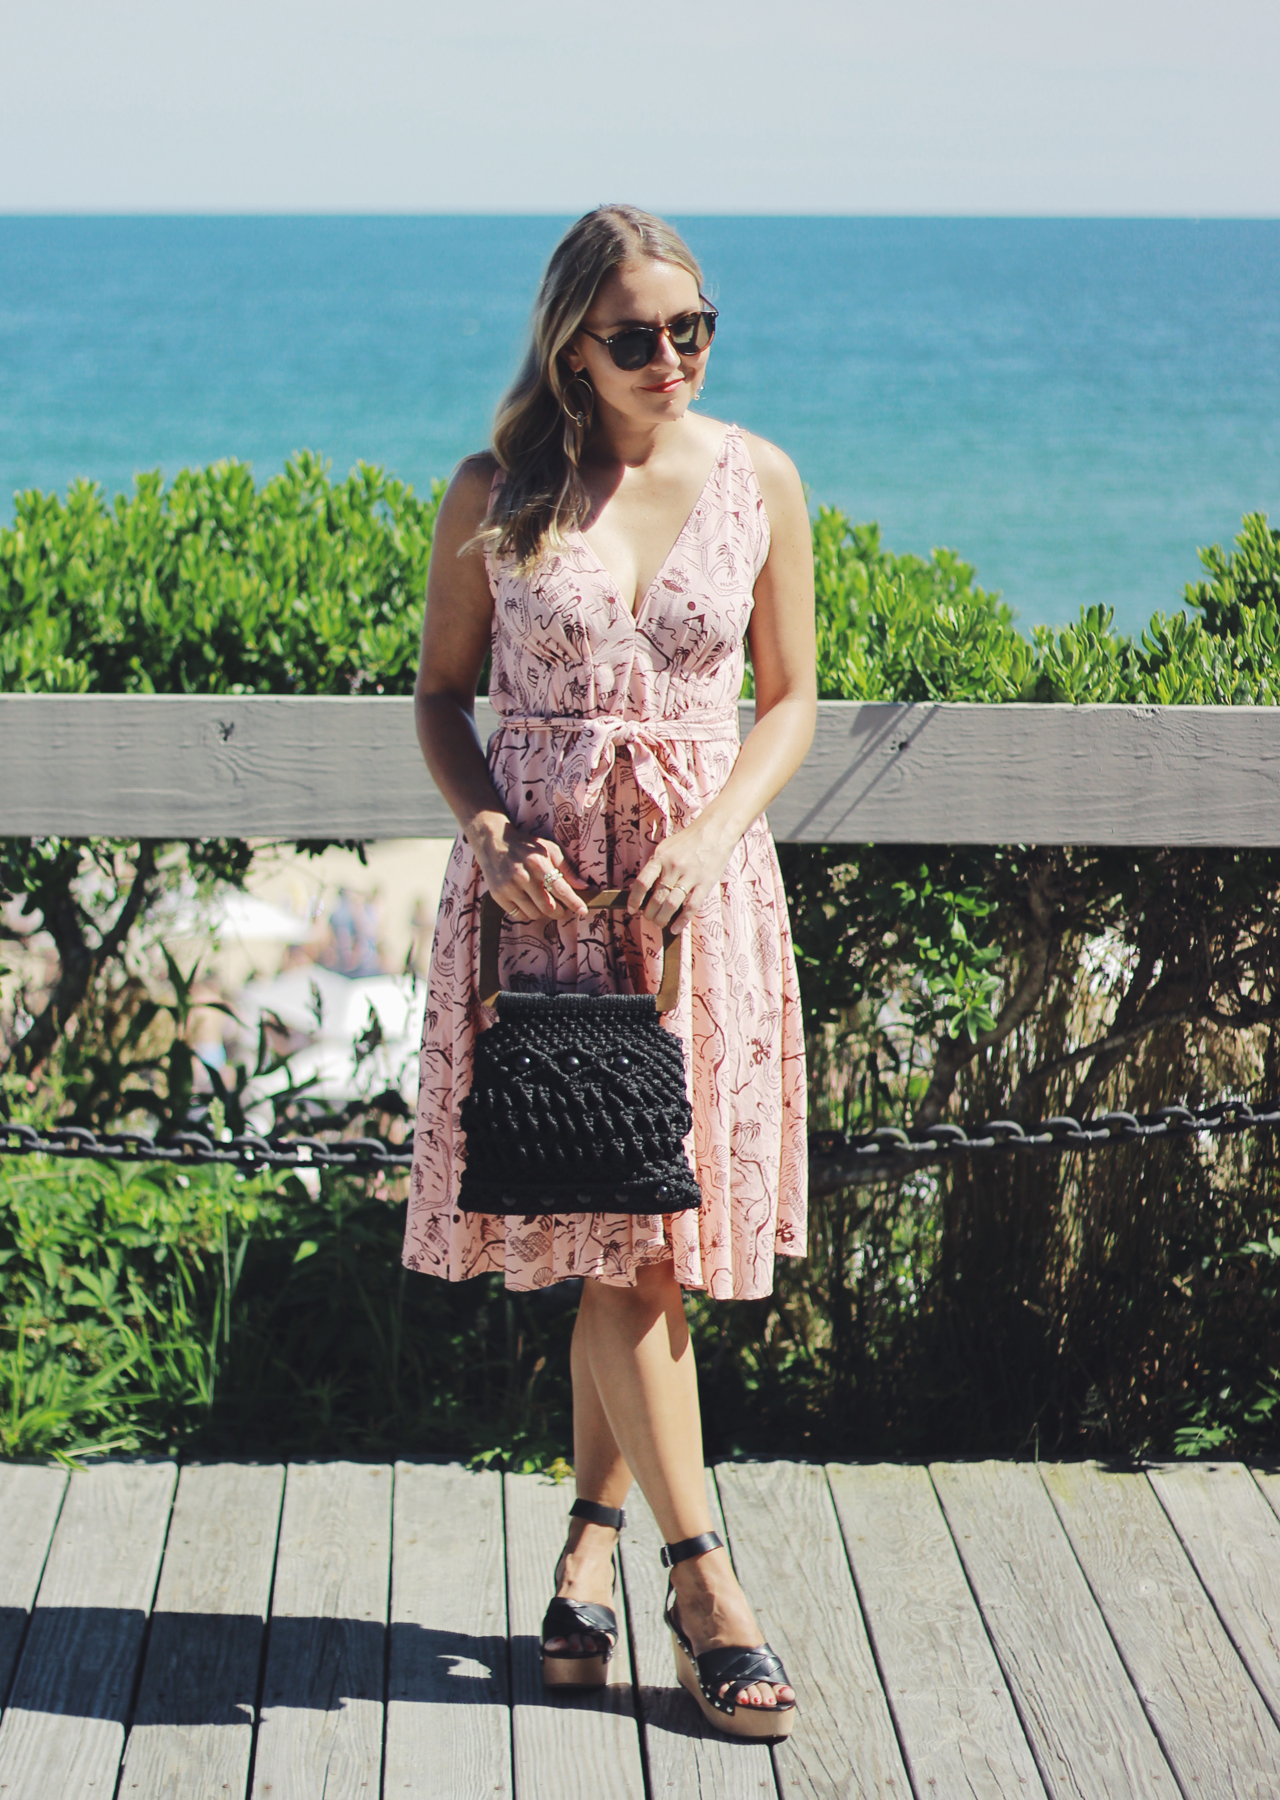 The Steele Maiden: Gurney's Montauk with Kendra Scott